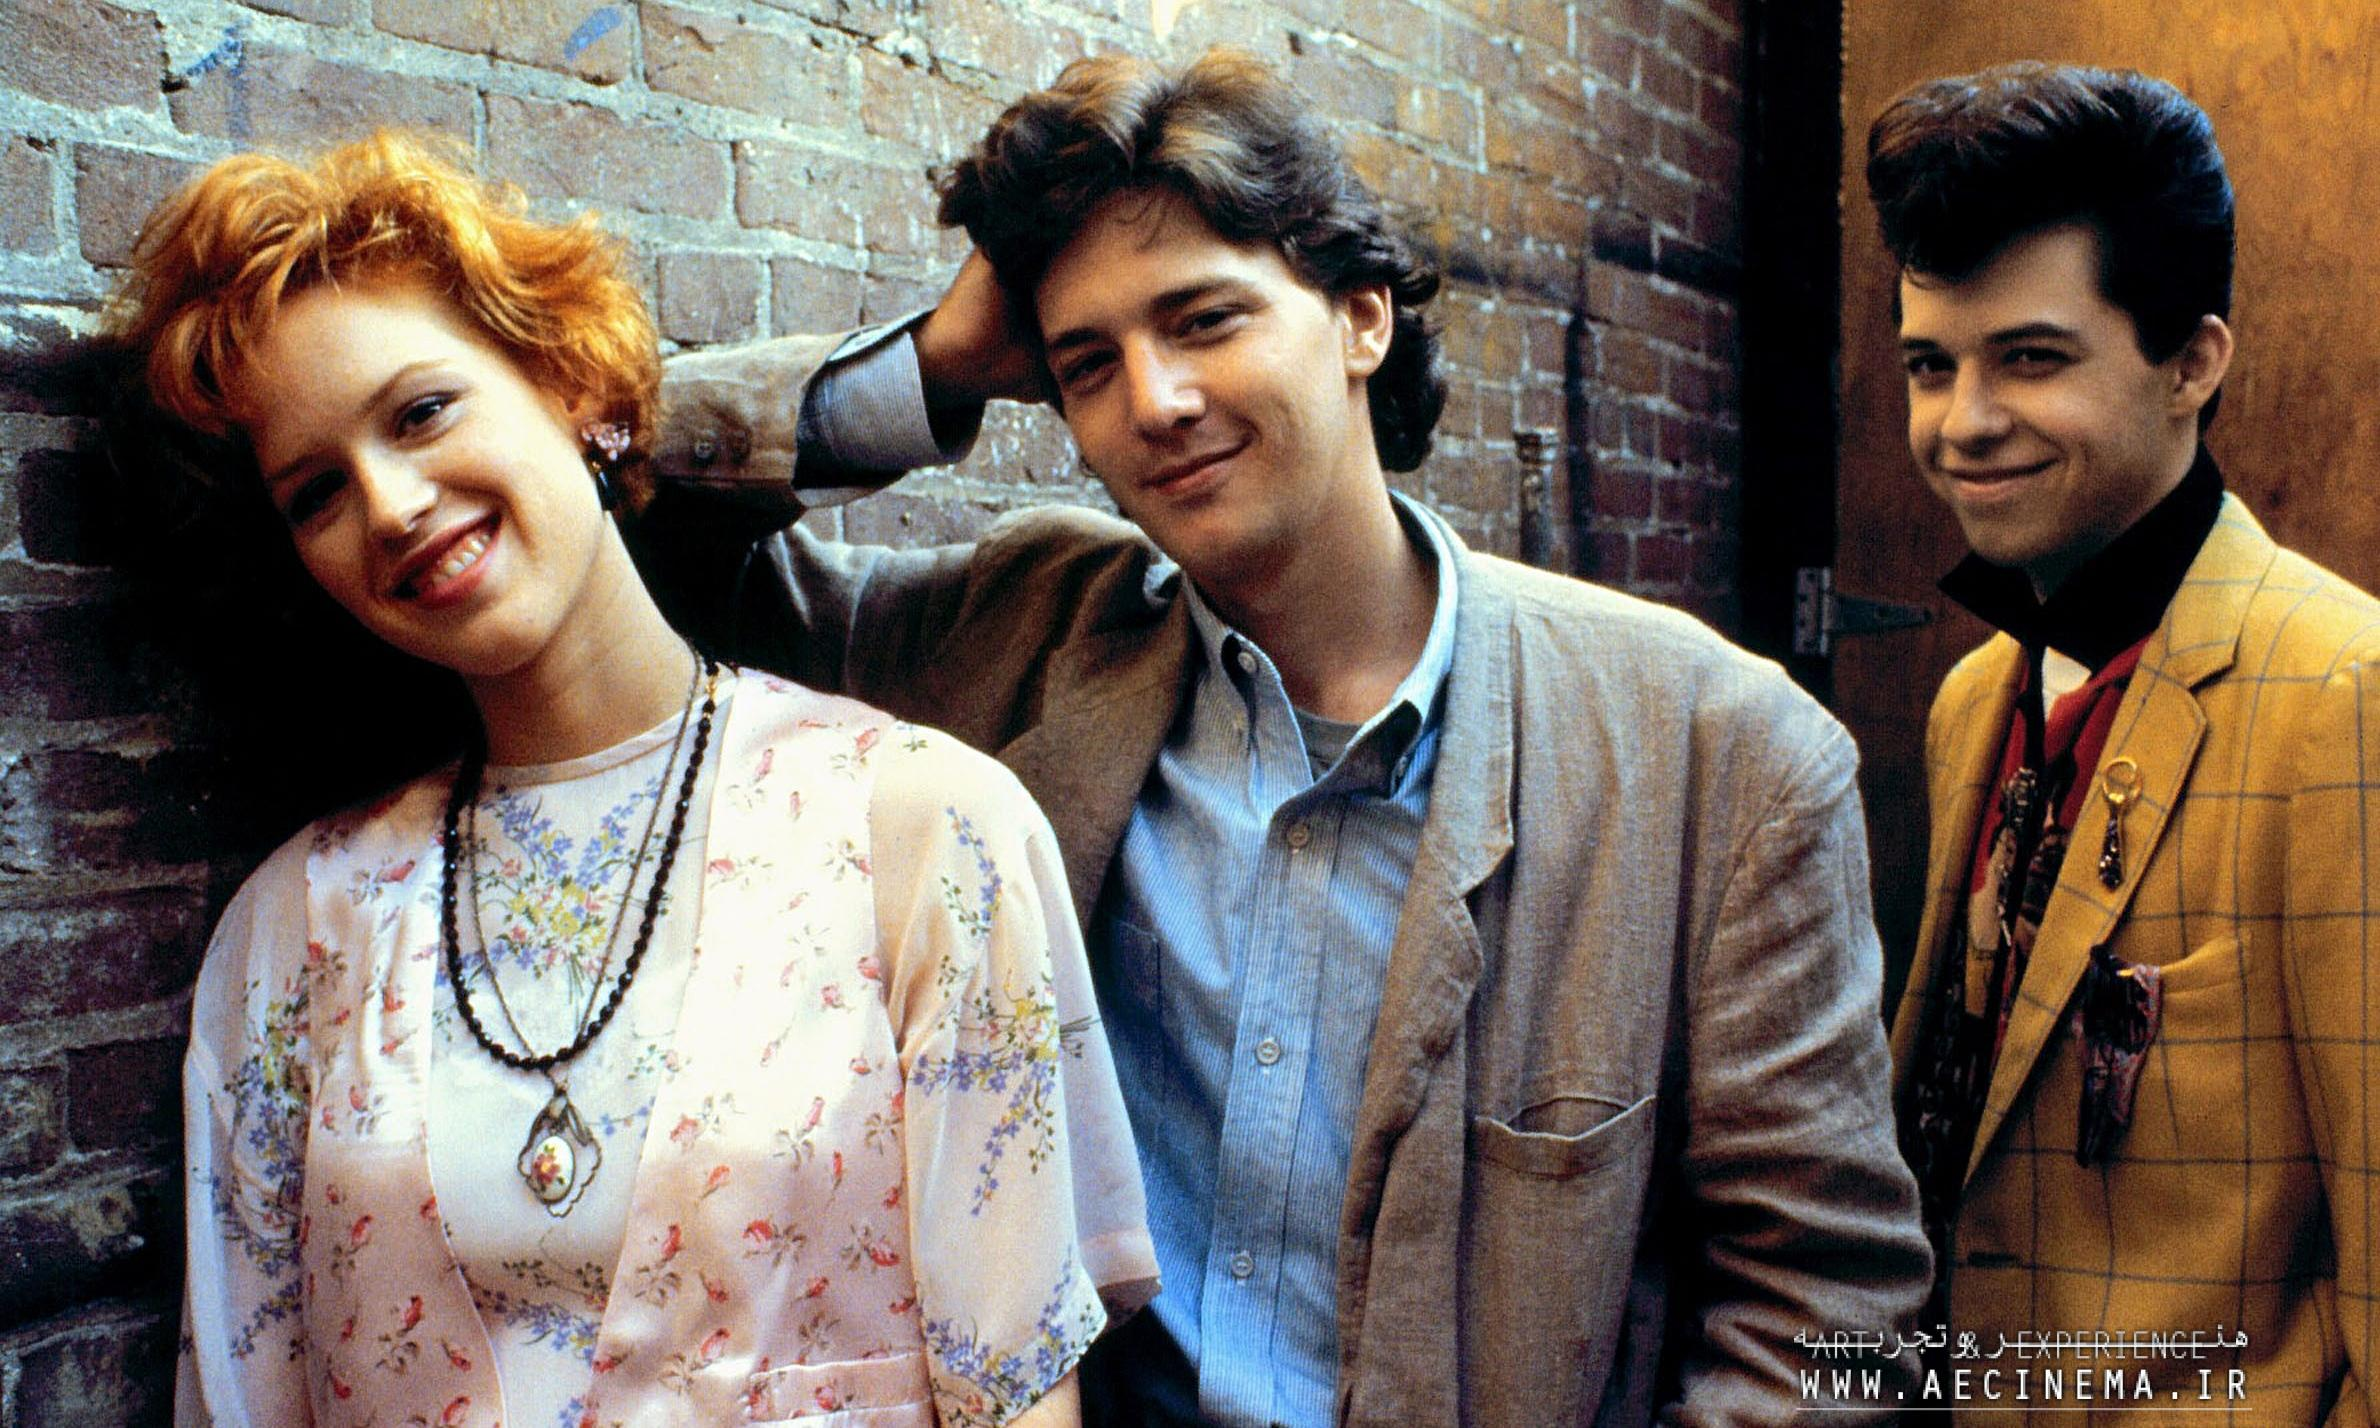 'Pretty in Pink' Director Howard Deutch on Film's Legacy and Casting Molly Ringwald